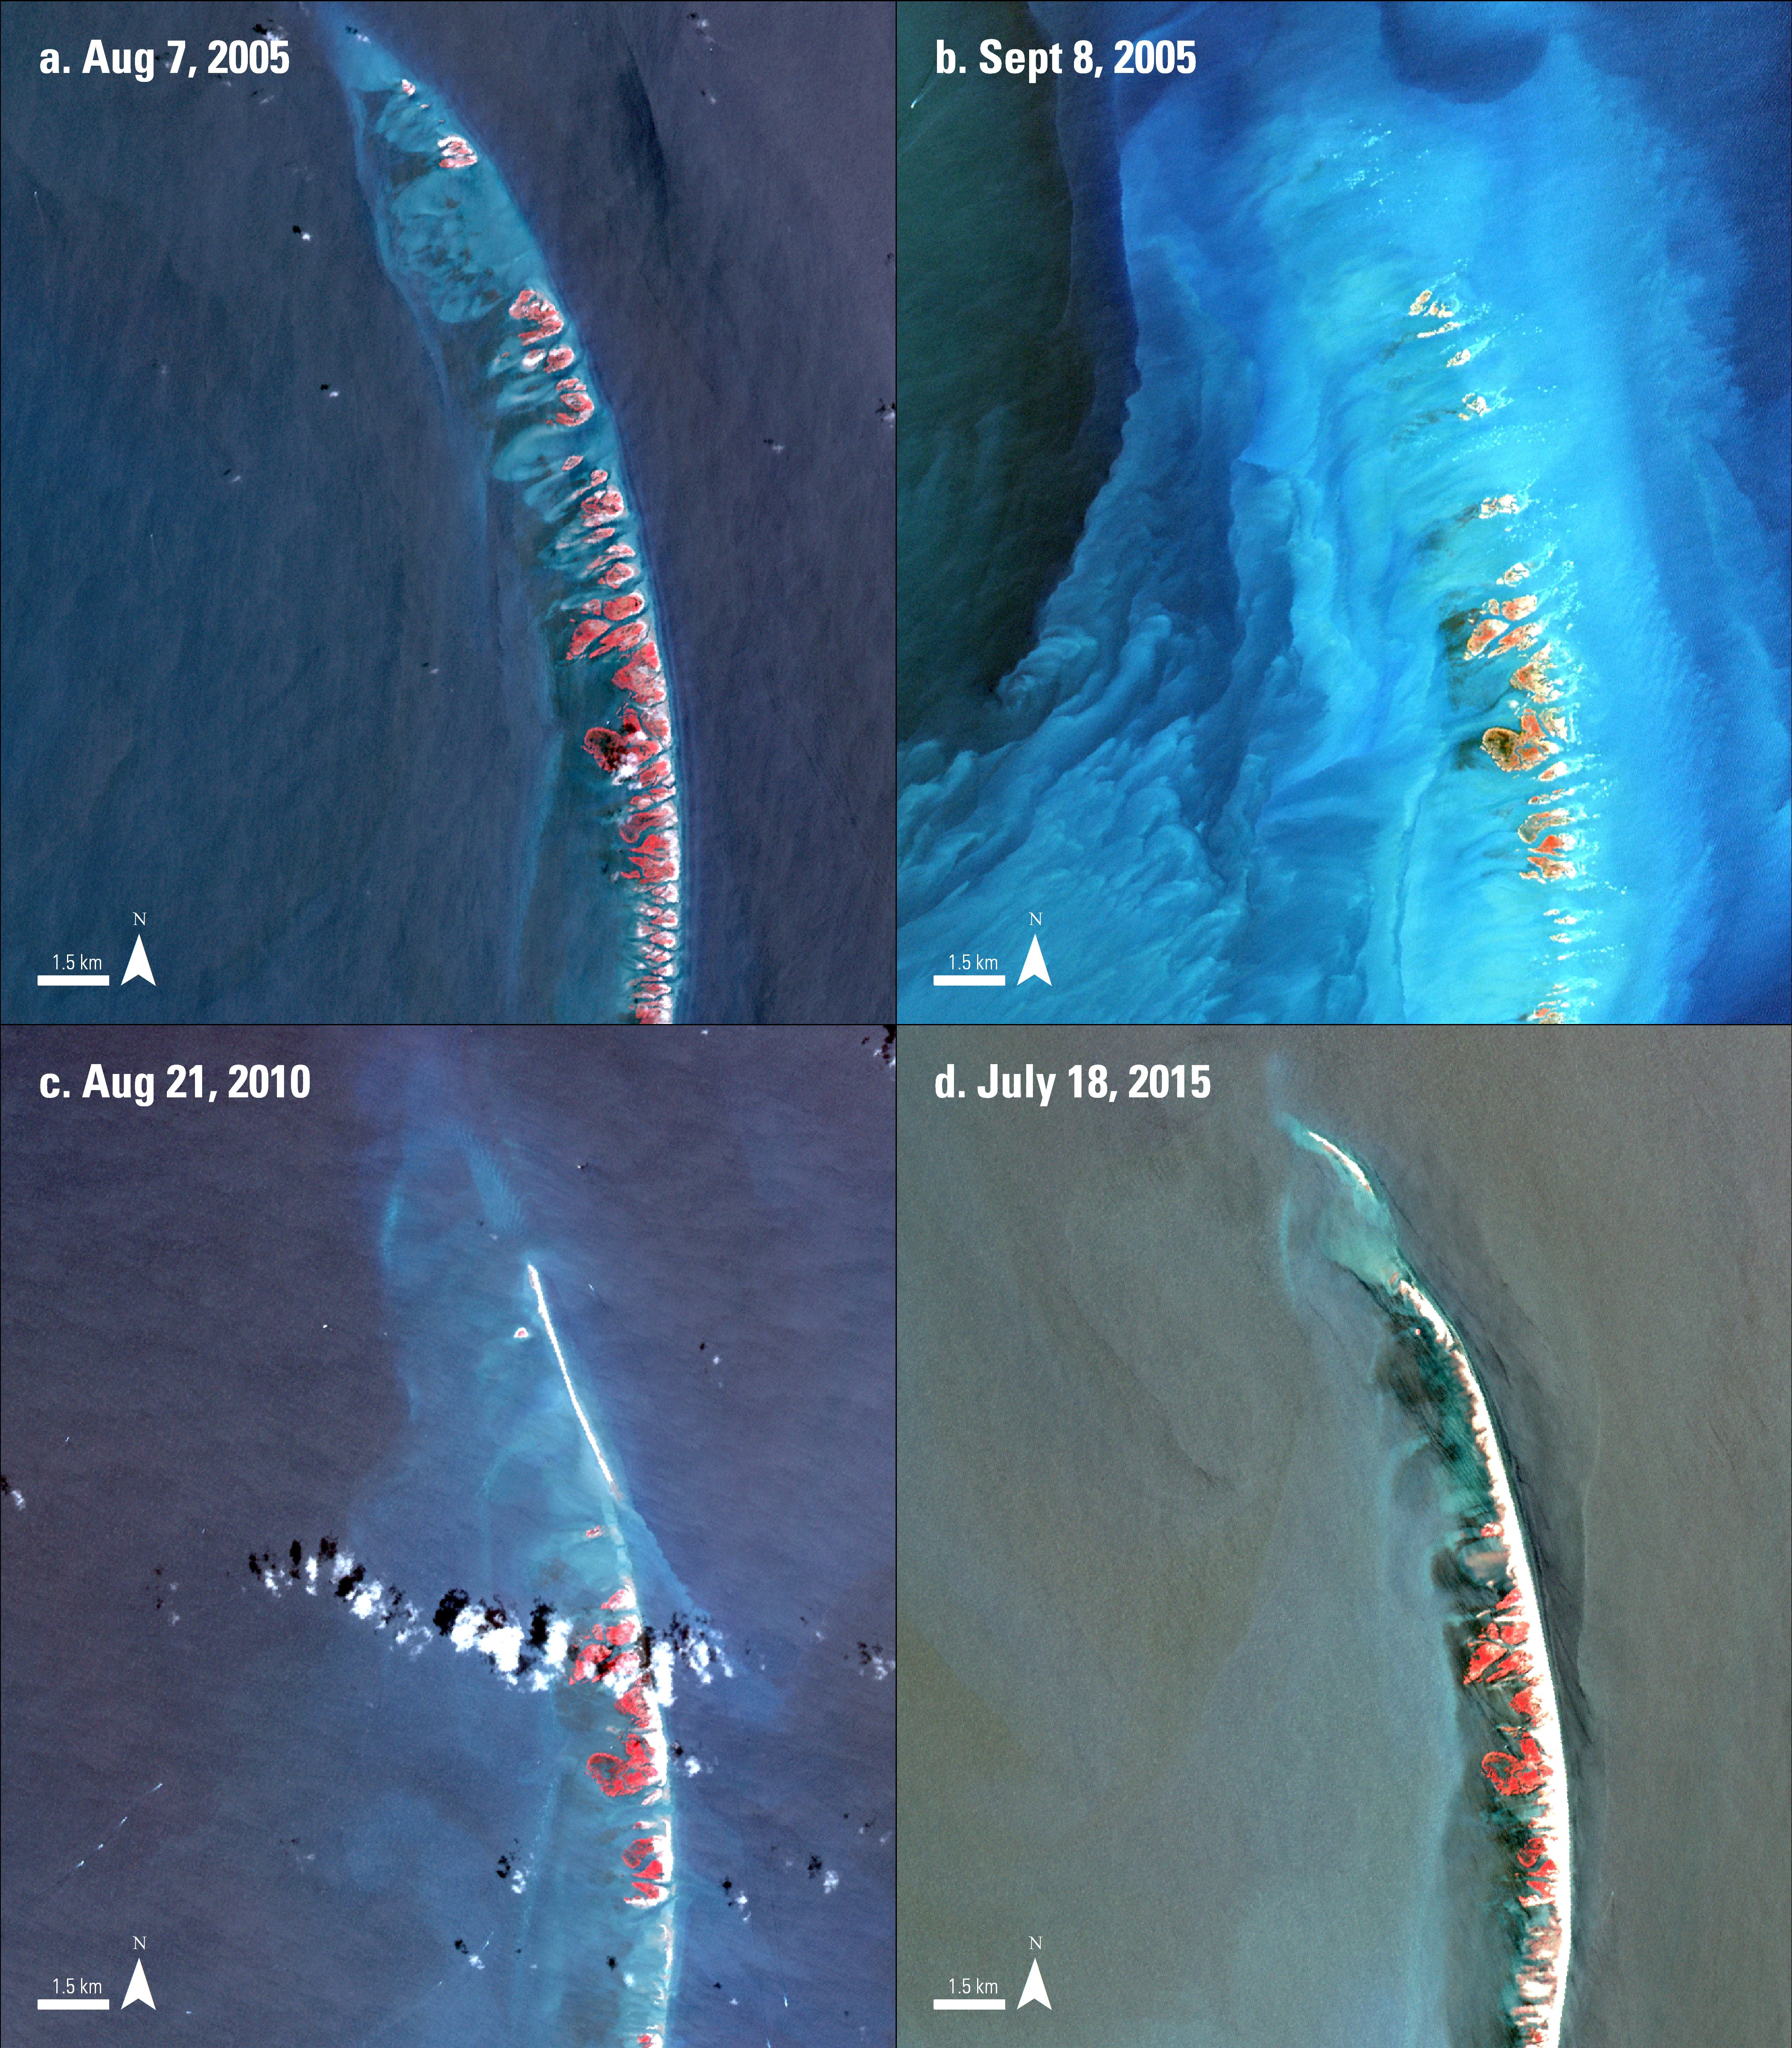 Four Terra ASTER surface reflectance images over the Chandeleur Islands showing the island before Hurricane Katrina, after, 5 and 10 years later.